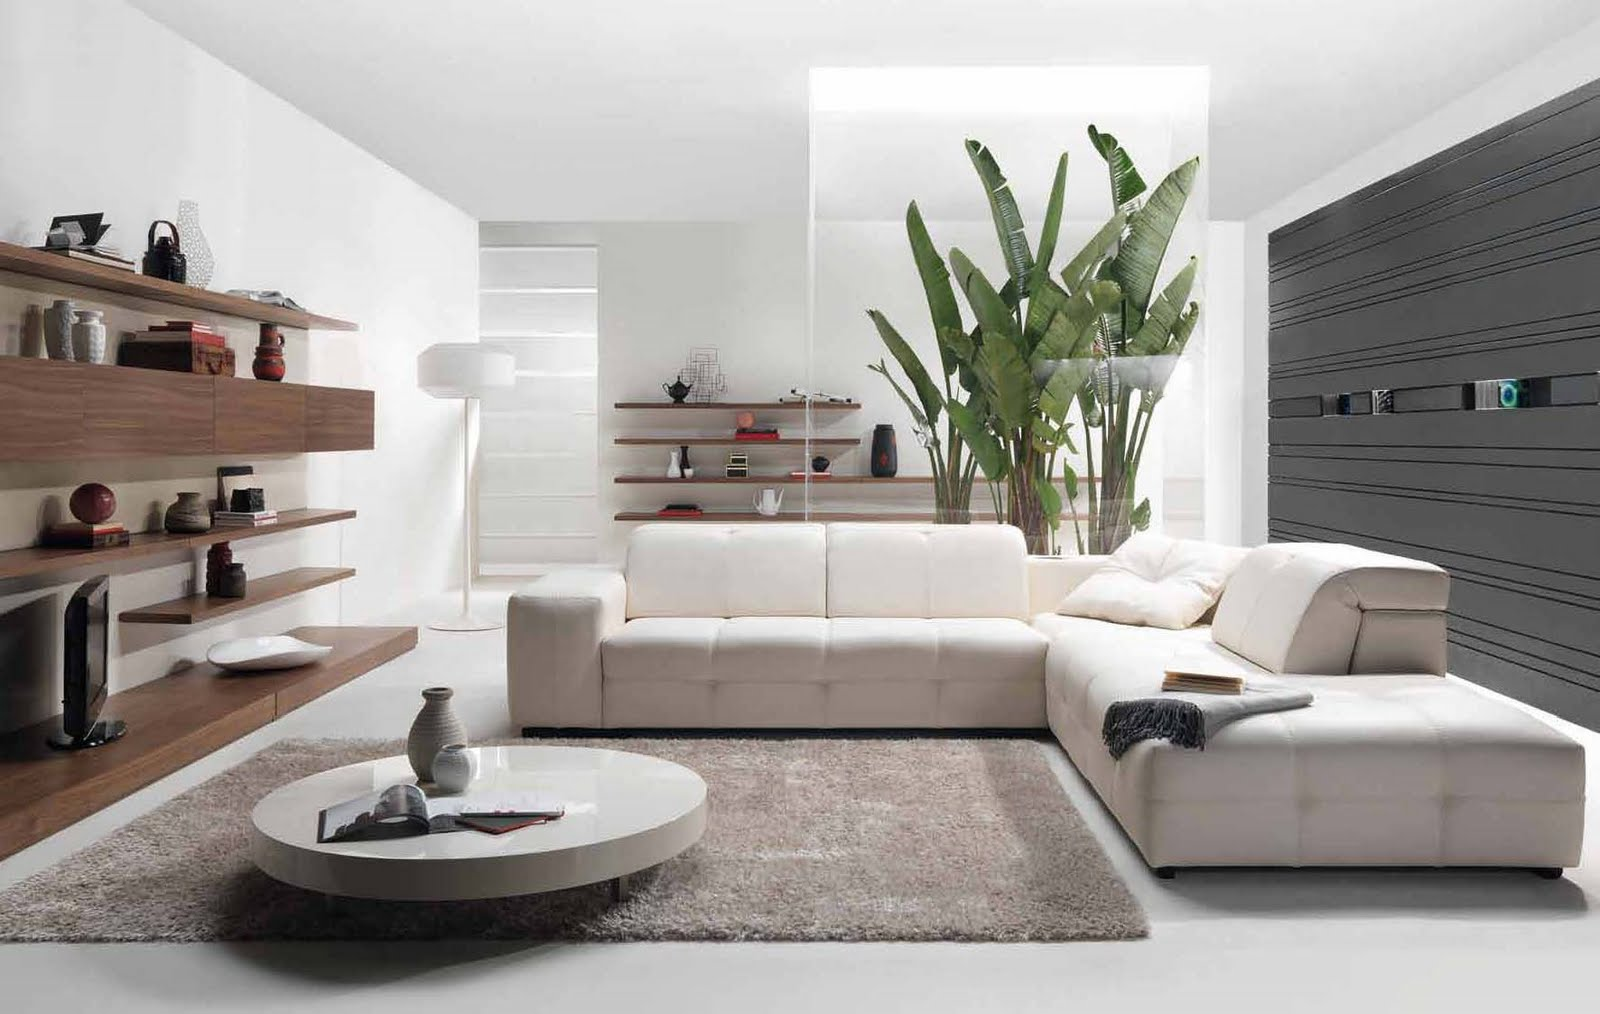 Future house design modern living room interior design for Living room interior ideas